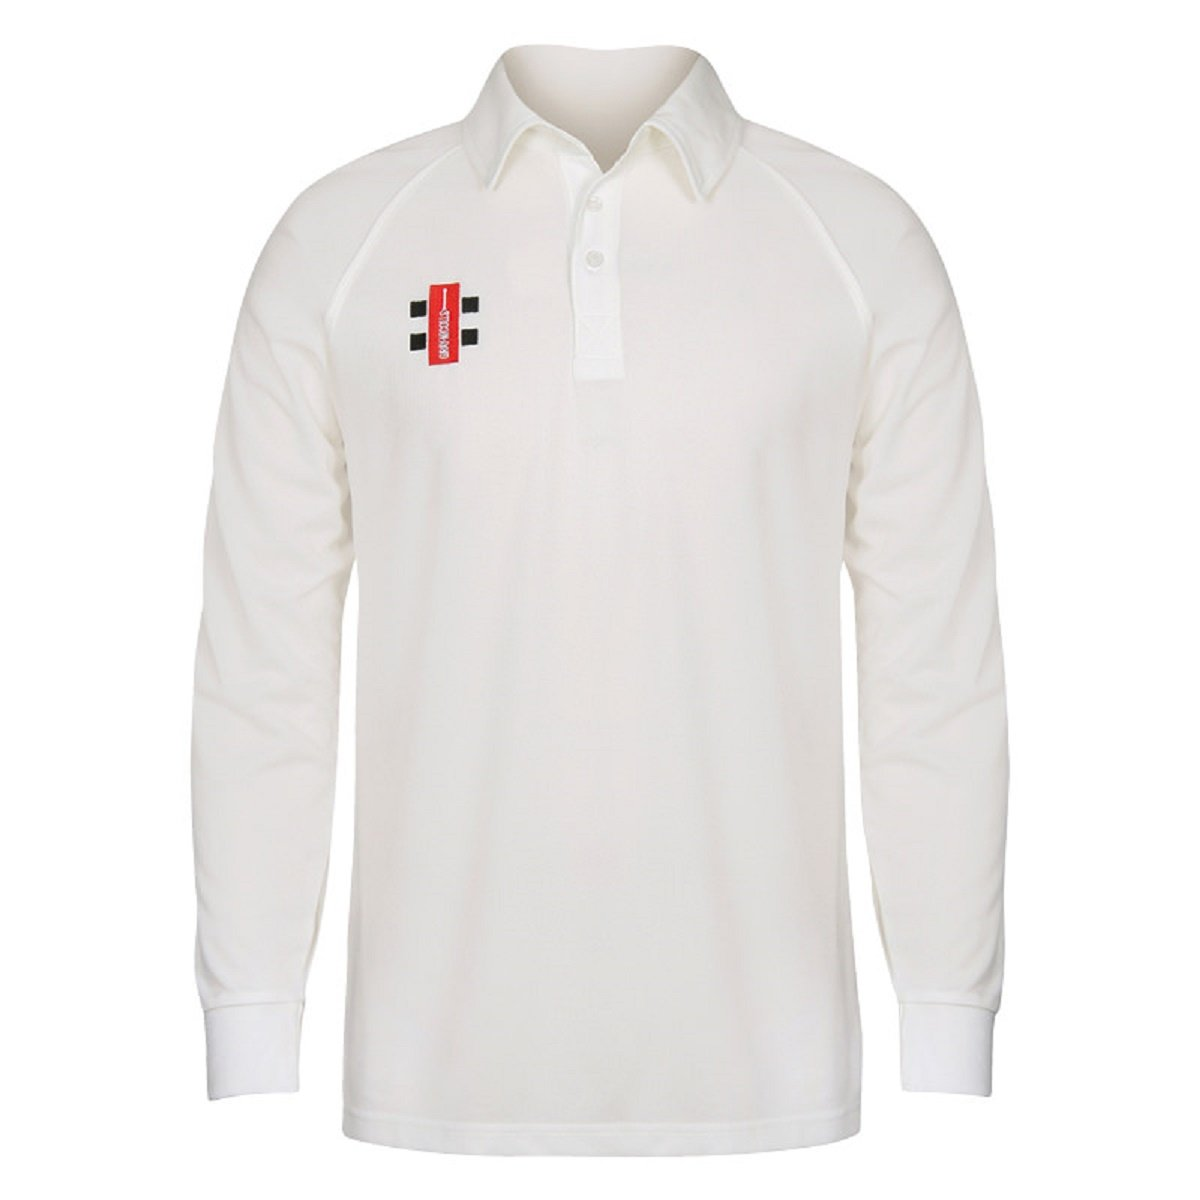 Men's Gray Nicolls Matrix Long Sleeve Cricket Shirt Cricketers player Training Sports GN001